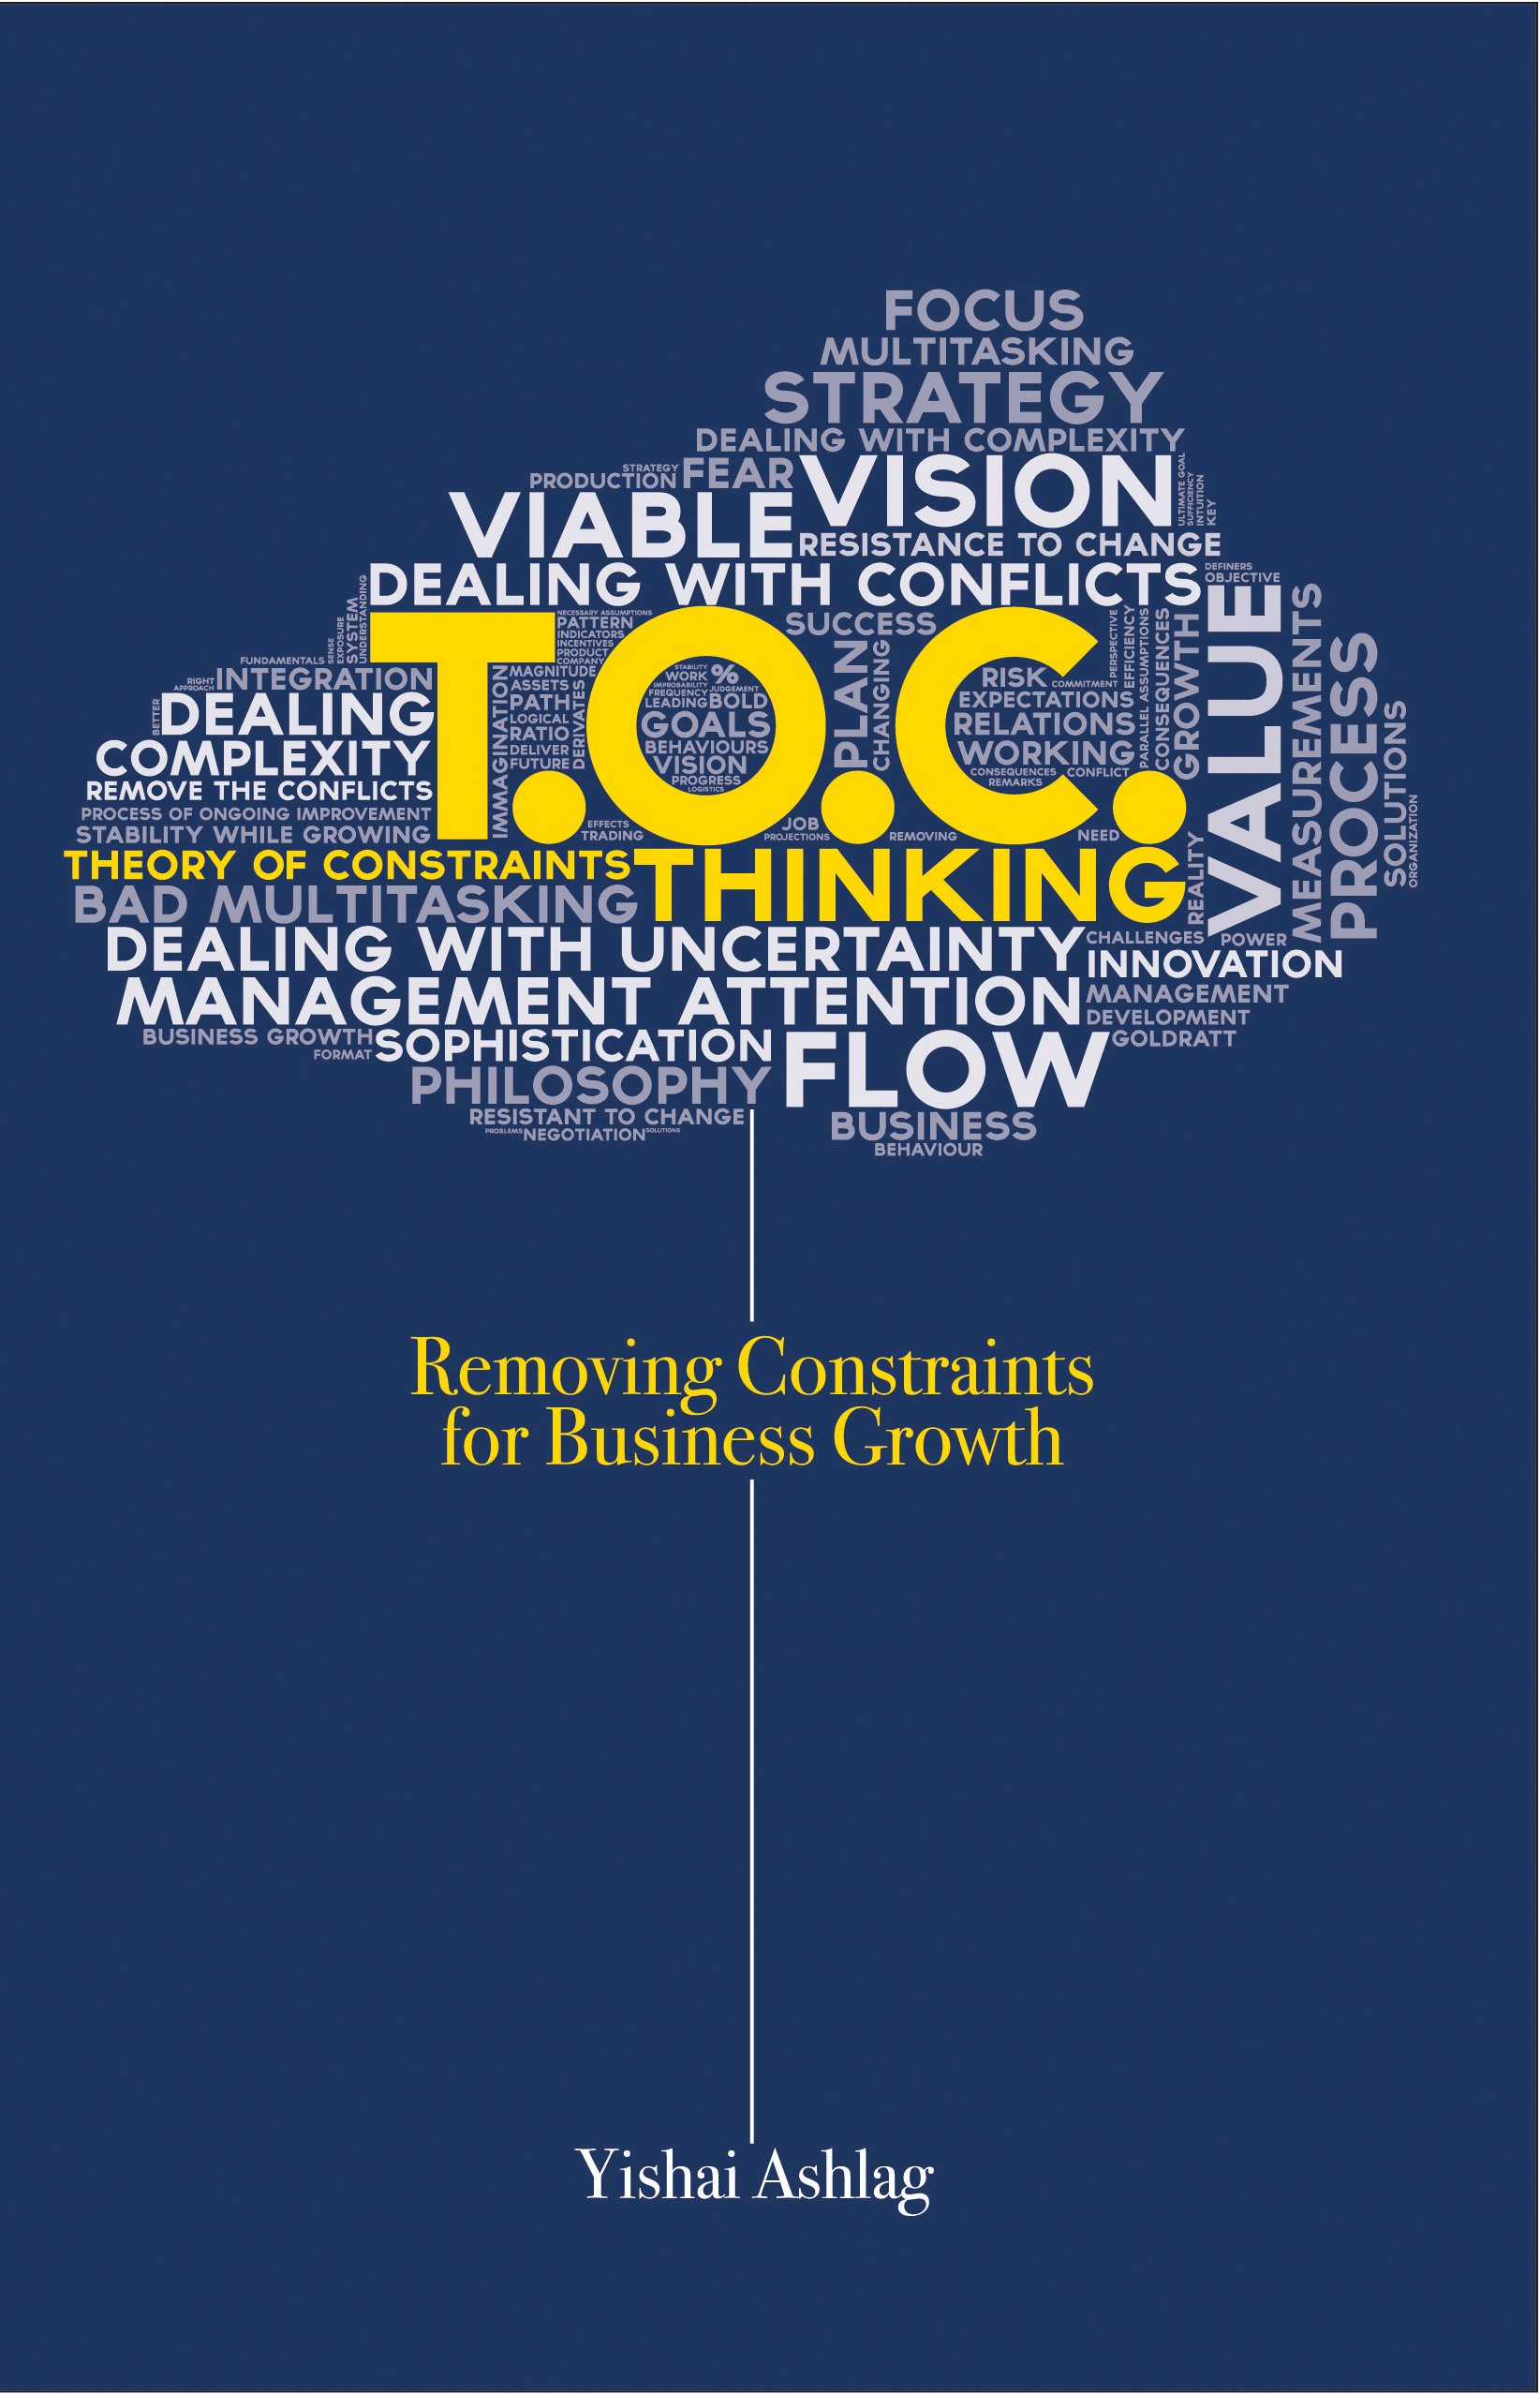 toc thinking removing constraints for business growth yishai toc thinking removing constraints for business growth yishai ashlag 9780884272069 amazon com books